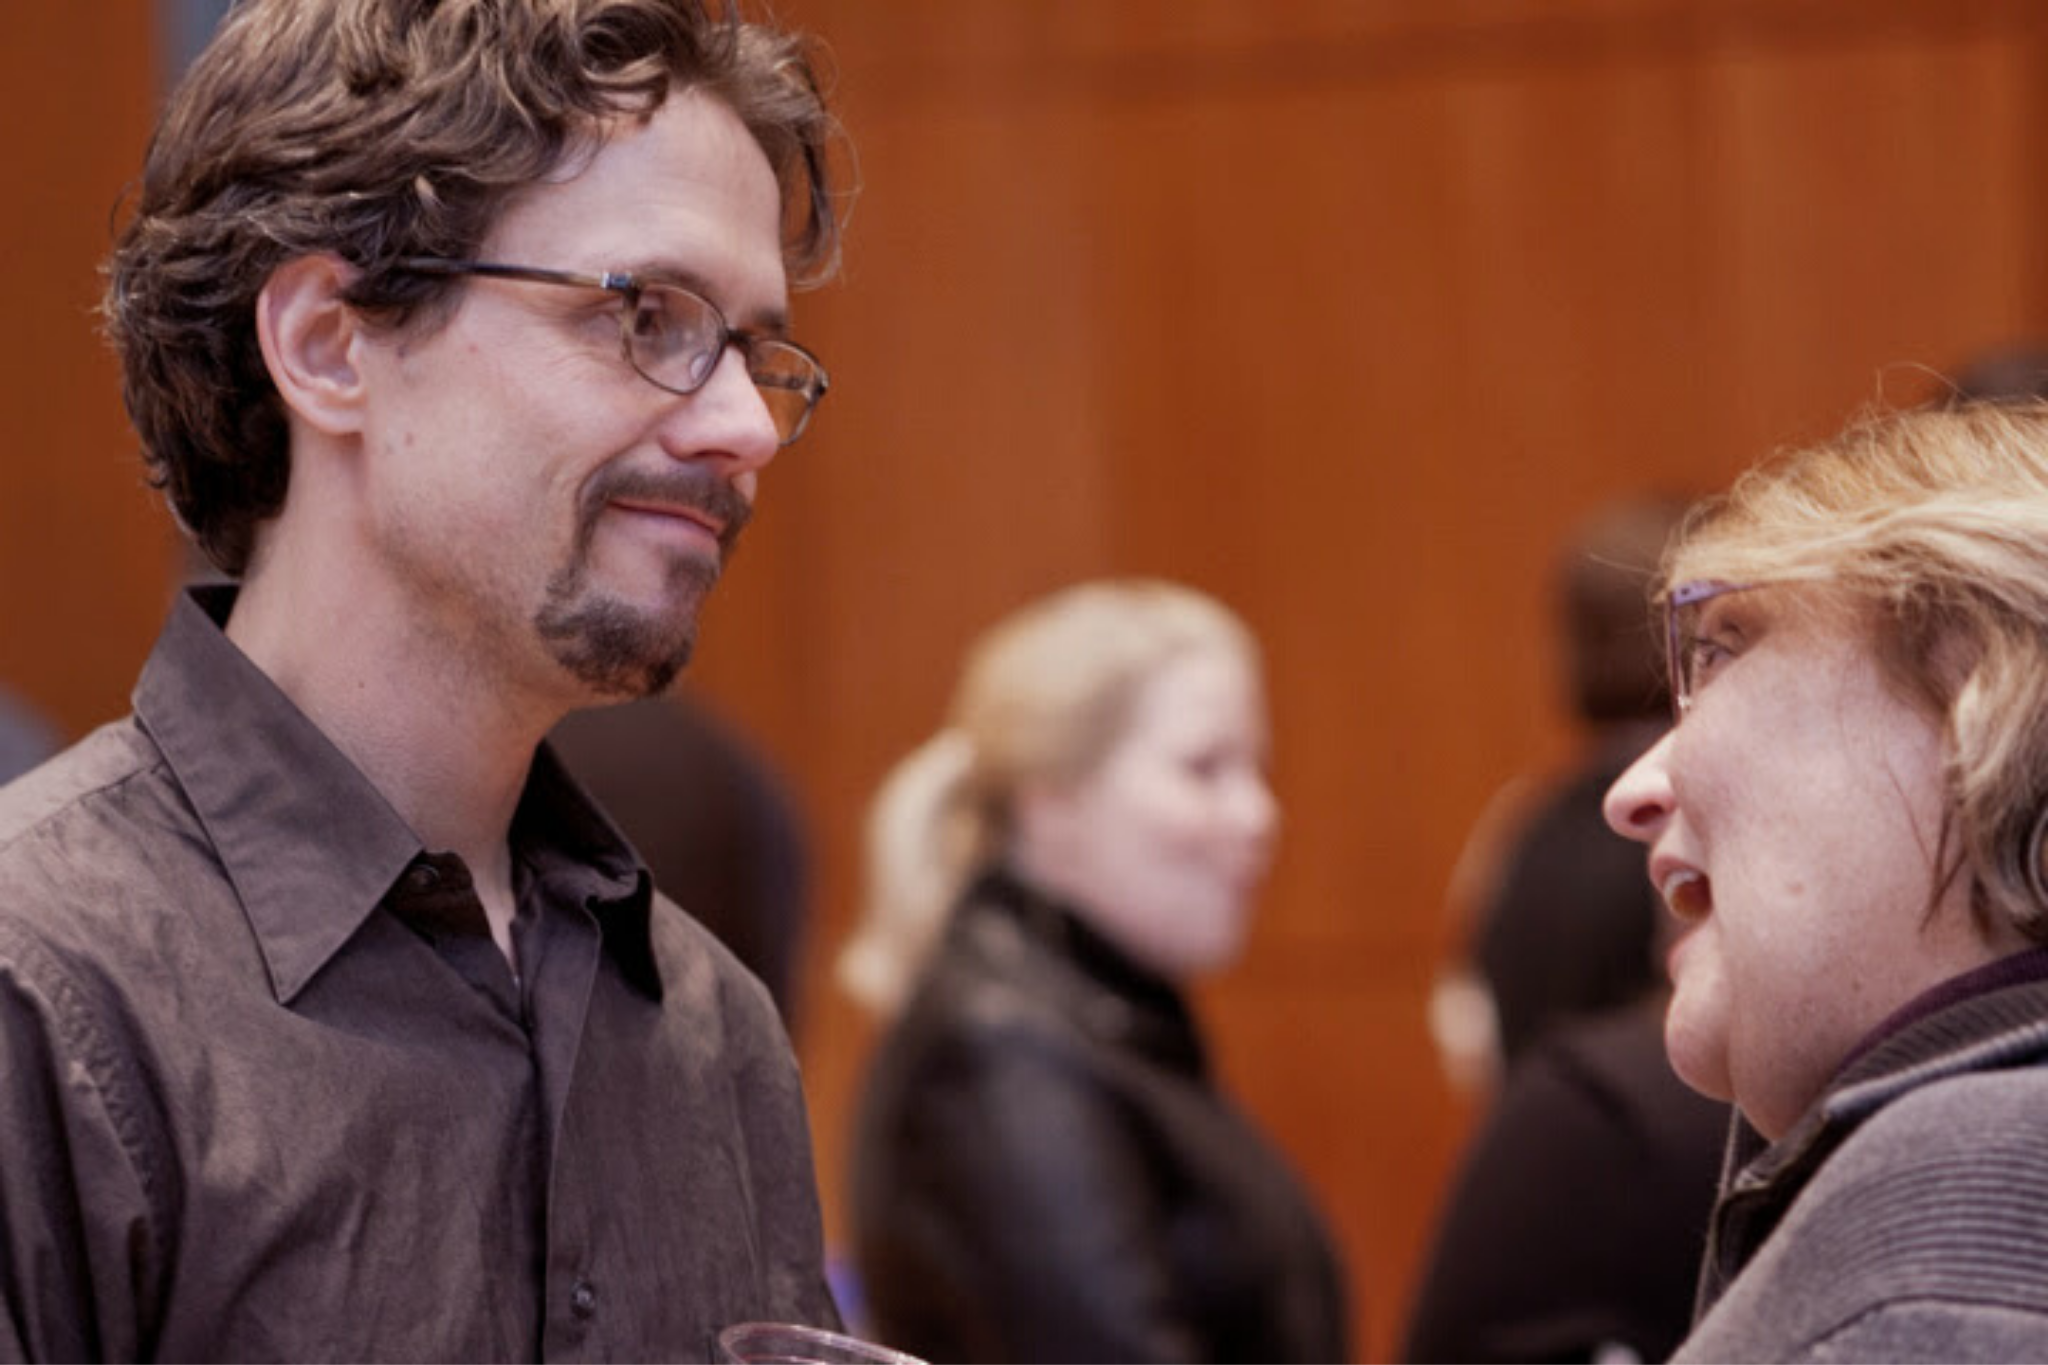 Lewis Wheeler at a reception for Richard III, Theater in the Rough, 2013